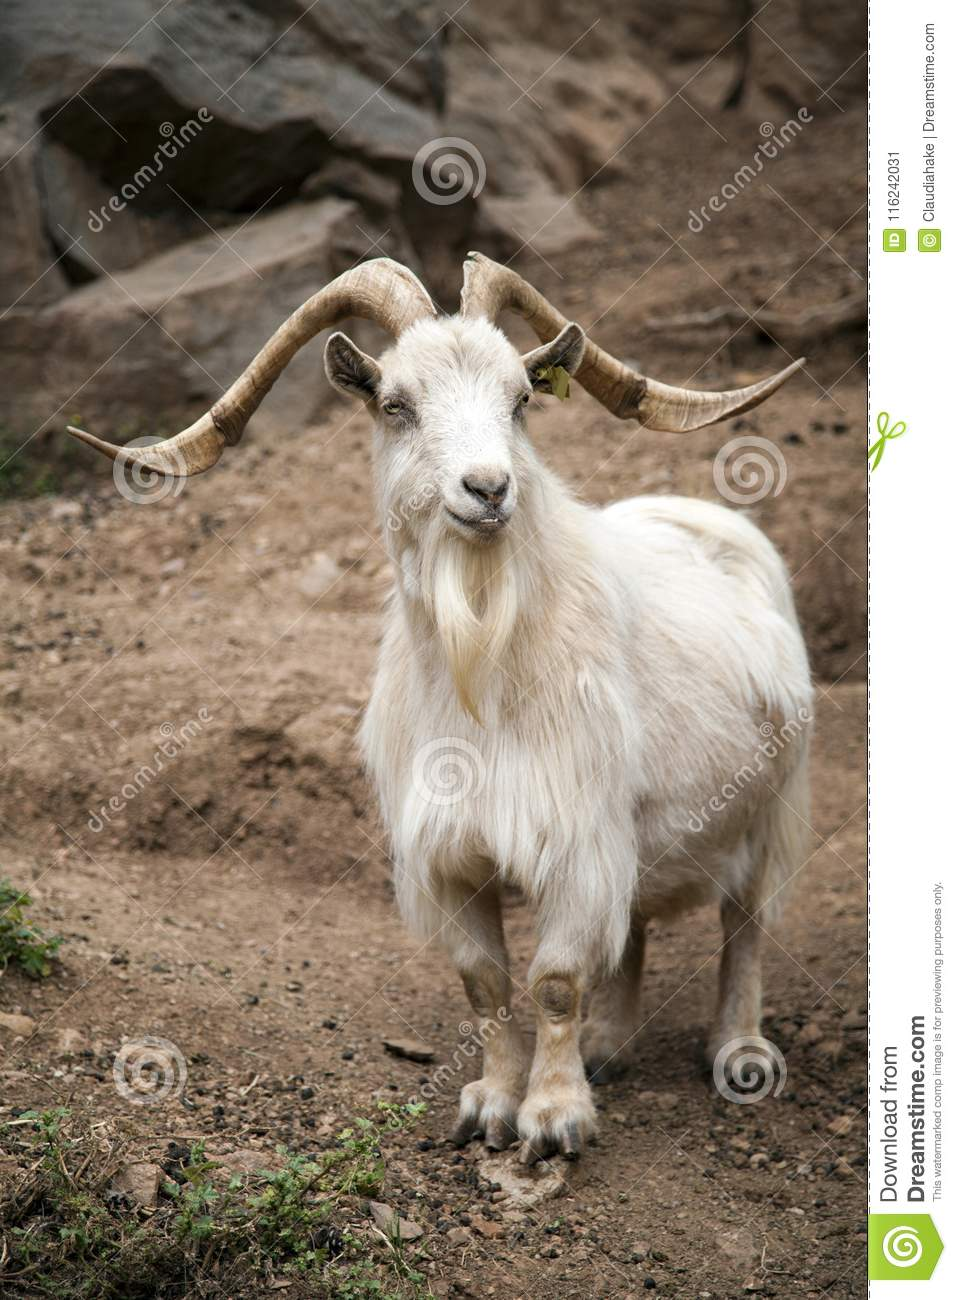 White Male Goat With Long Horns Stock Image - Image of white, goat ...